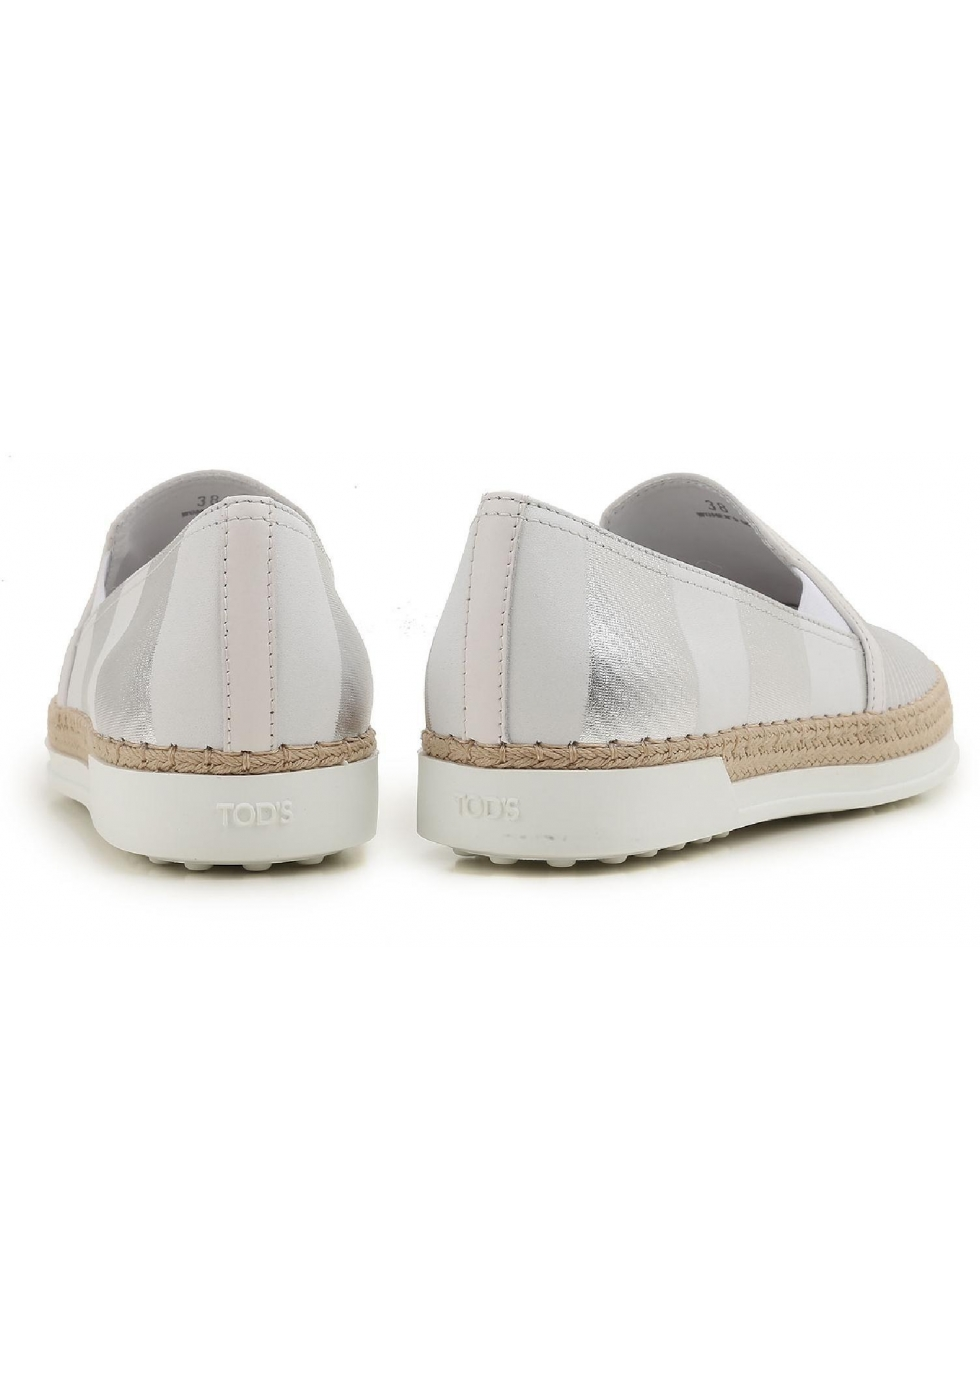 newest 16508 56b70 tods-womens-slip-ons-sneakers-in-silver-laminated-leather.jpg